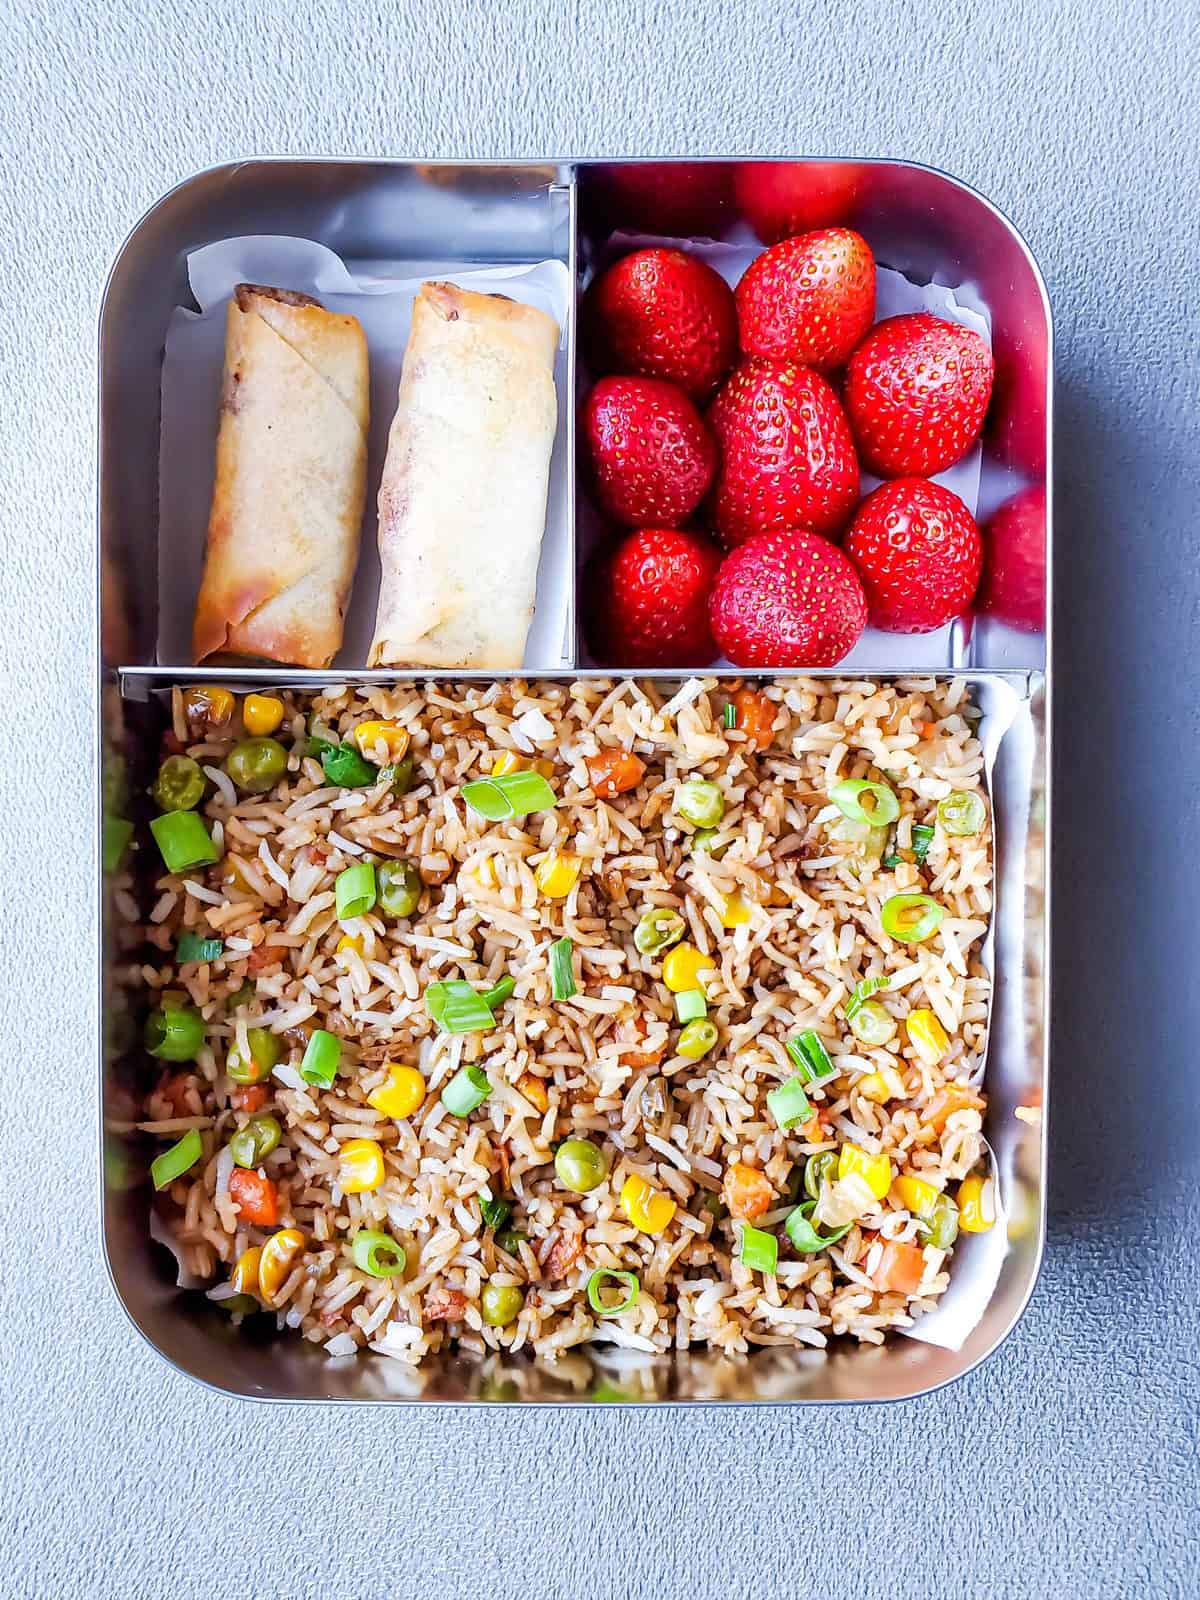 Veg Fried rice and spring rolls and strawberries in lunch box